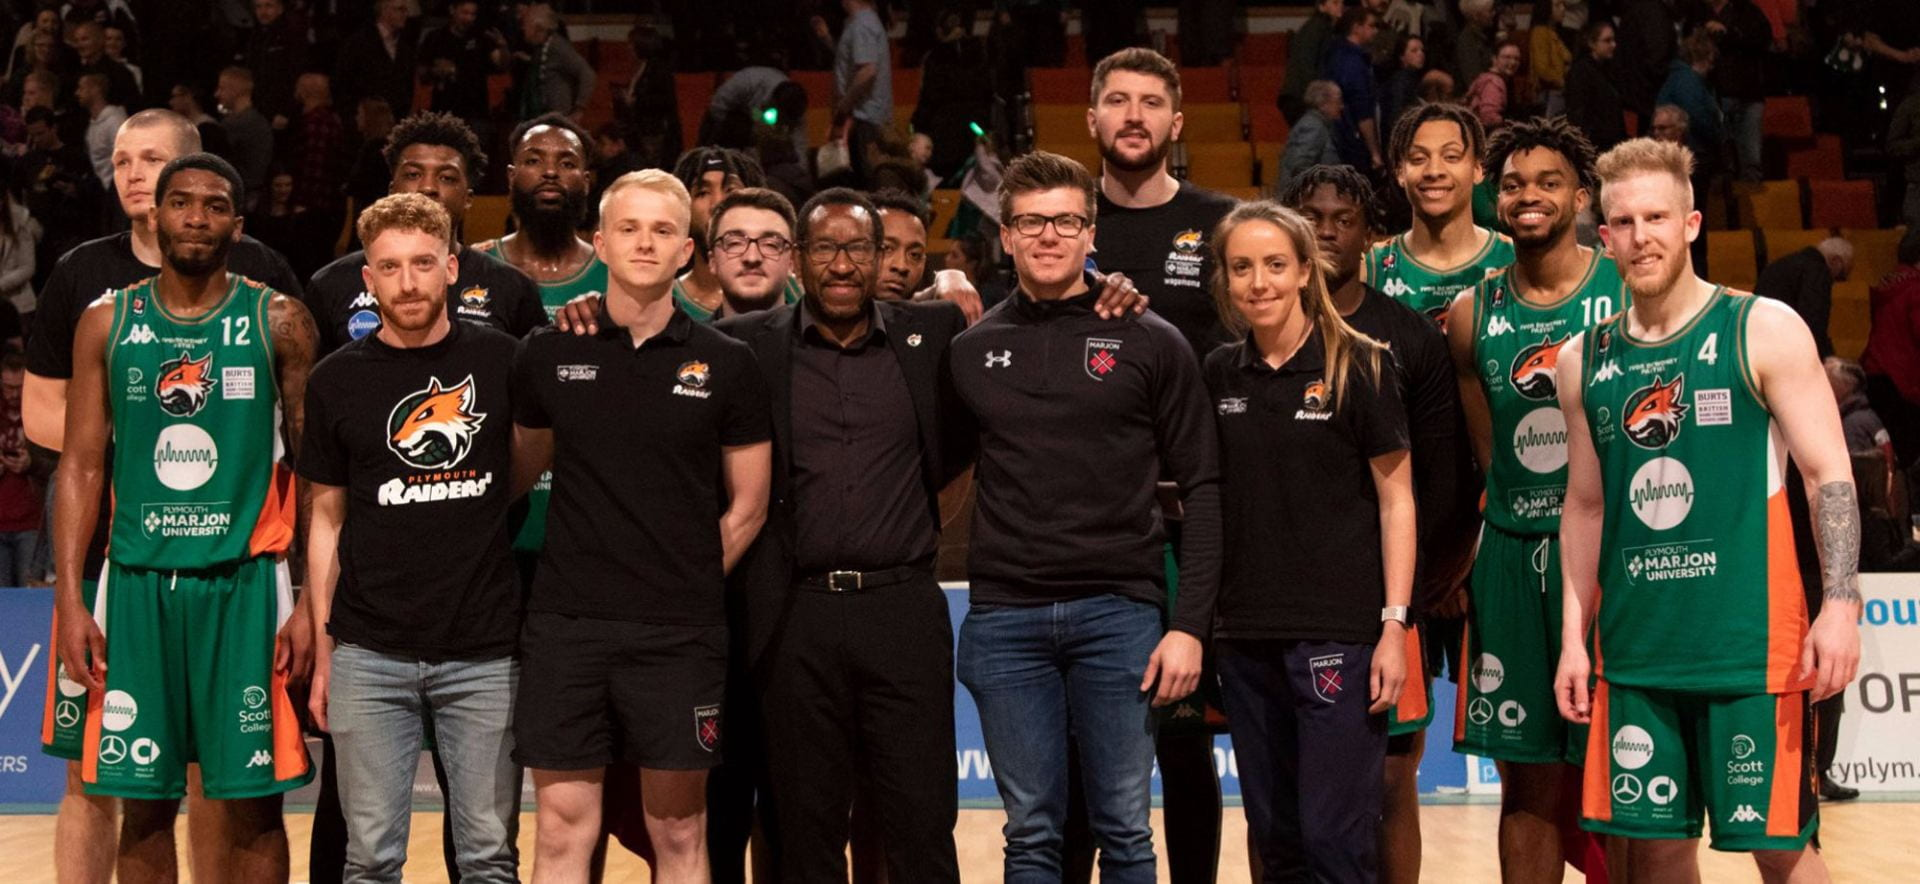 marjon and plymouth raiders